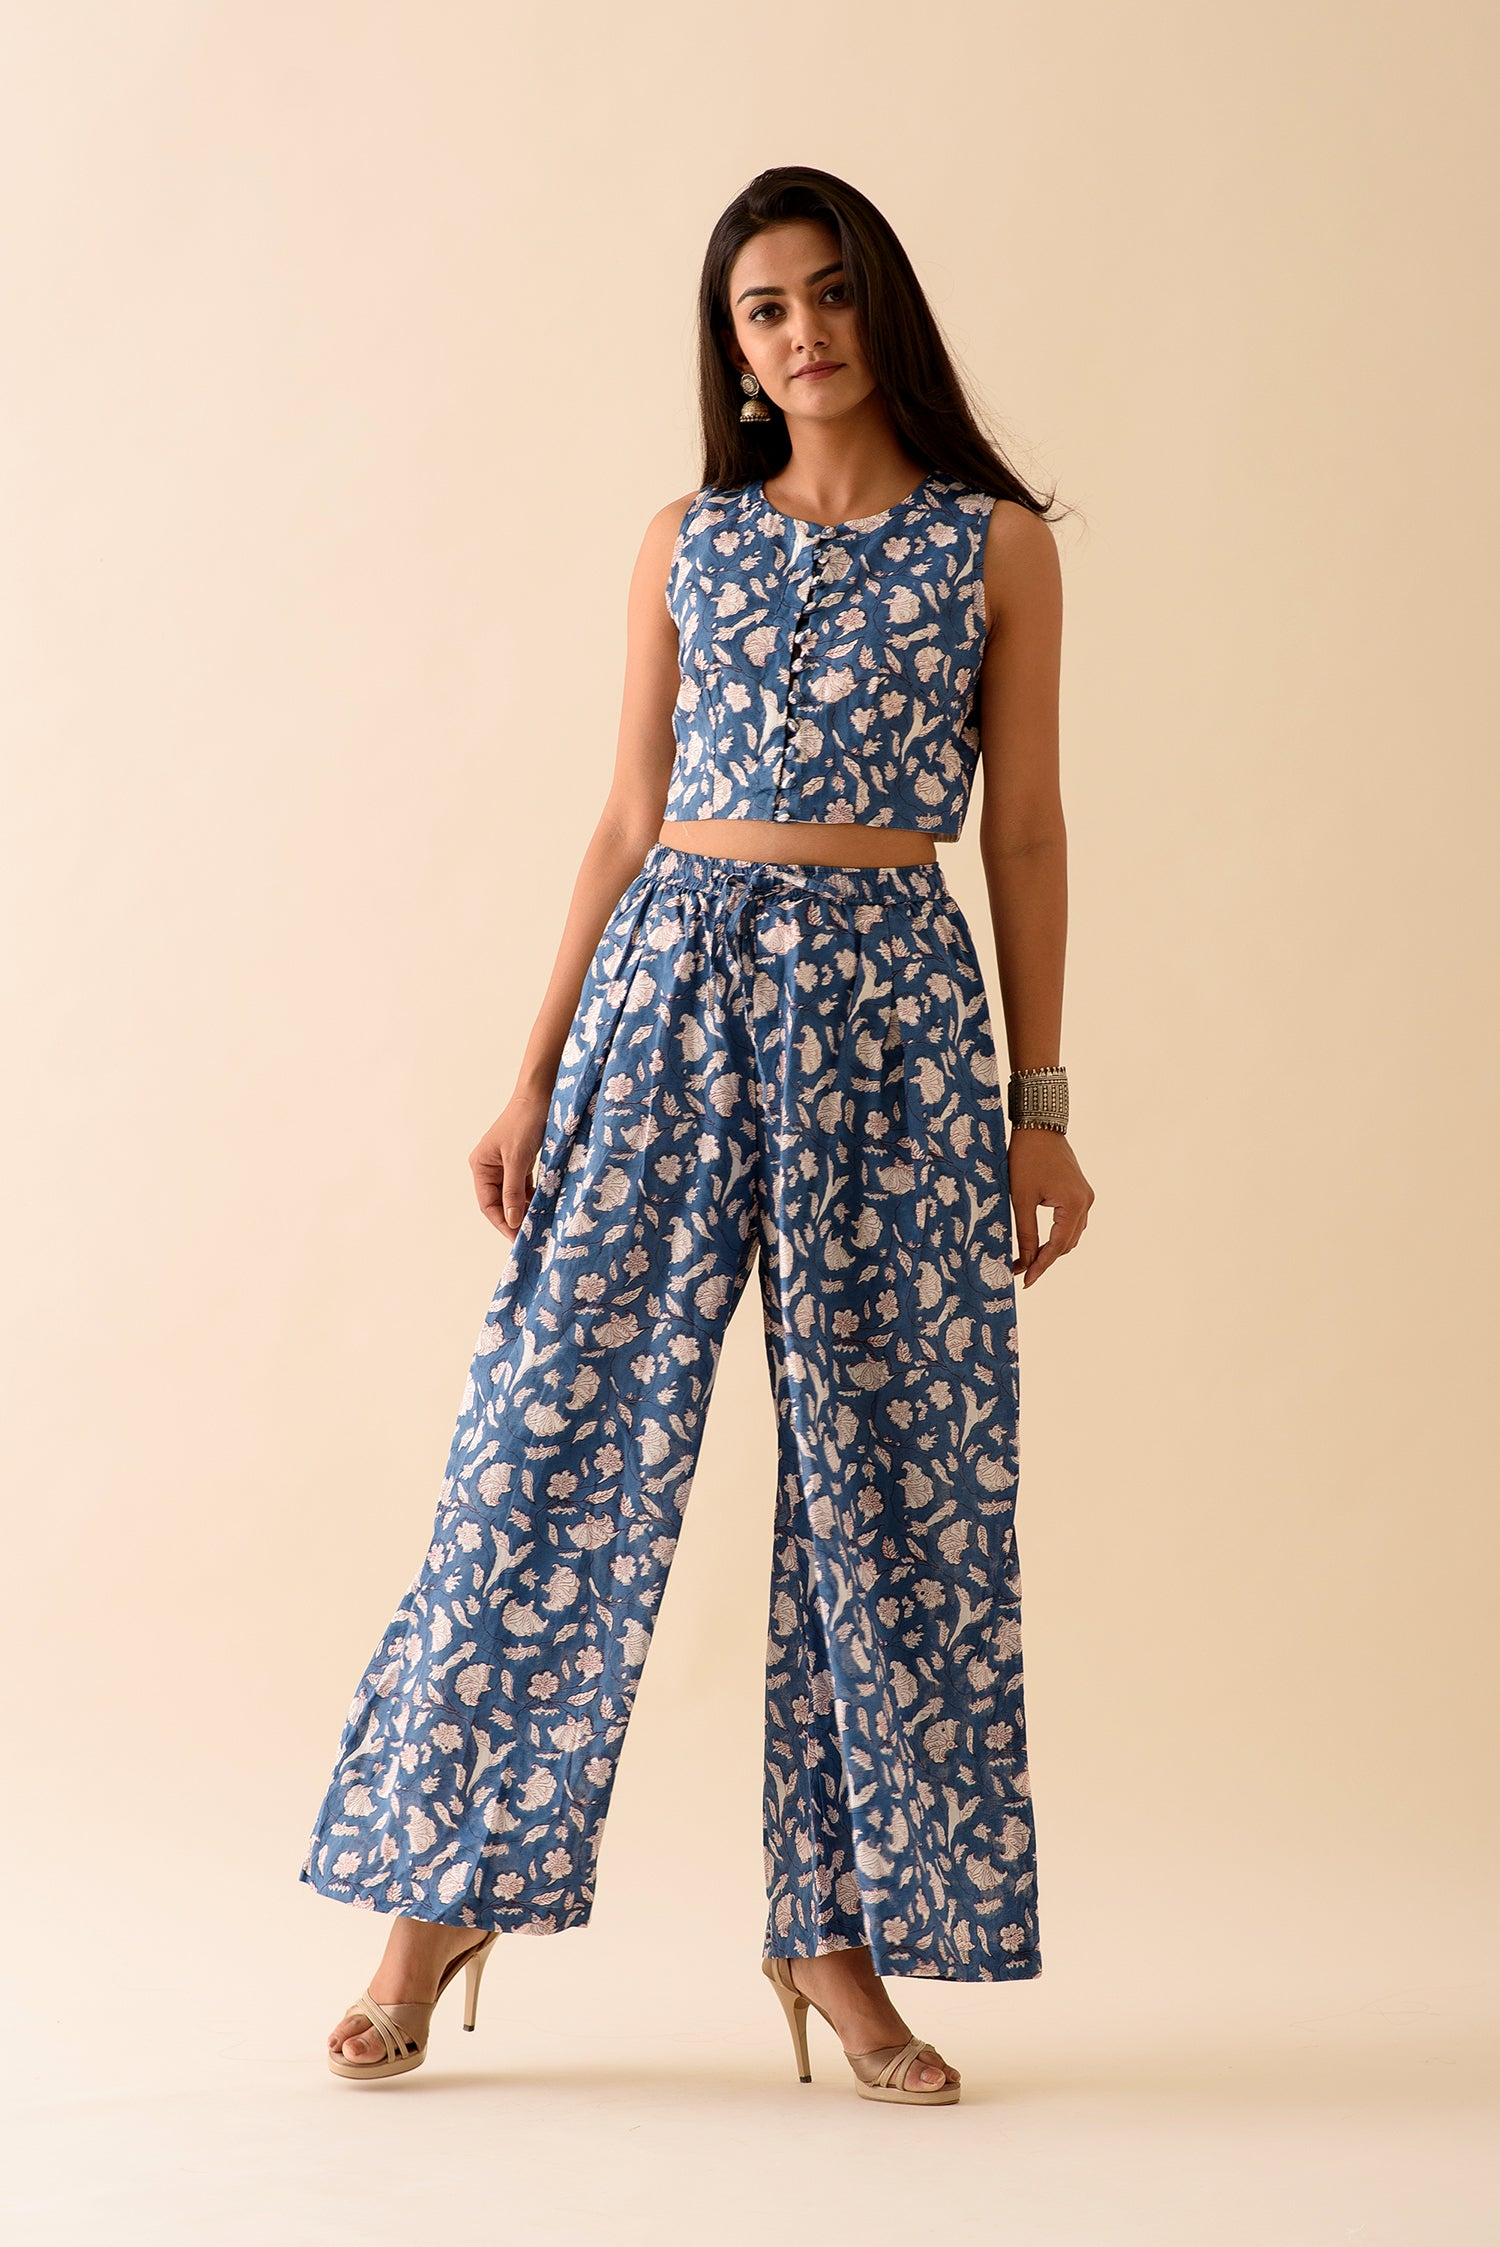 Indigo Blue BlockPrint Crop Top & Pants